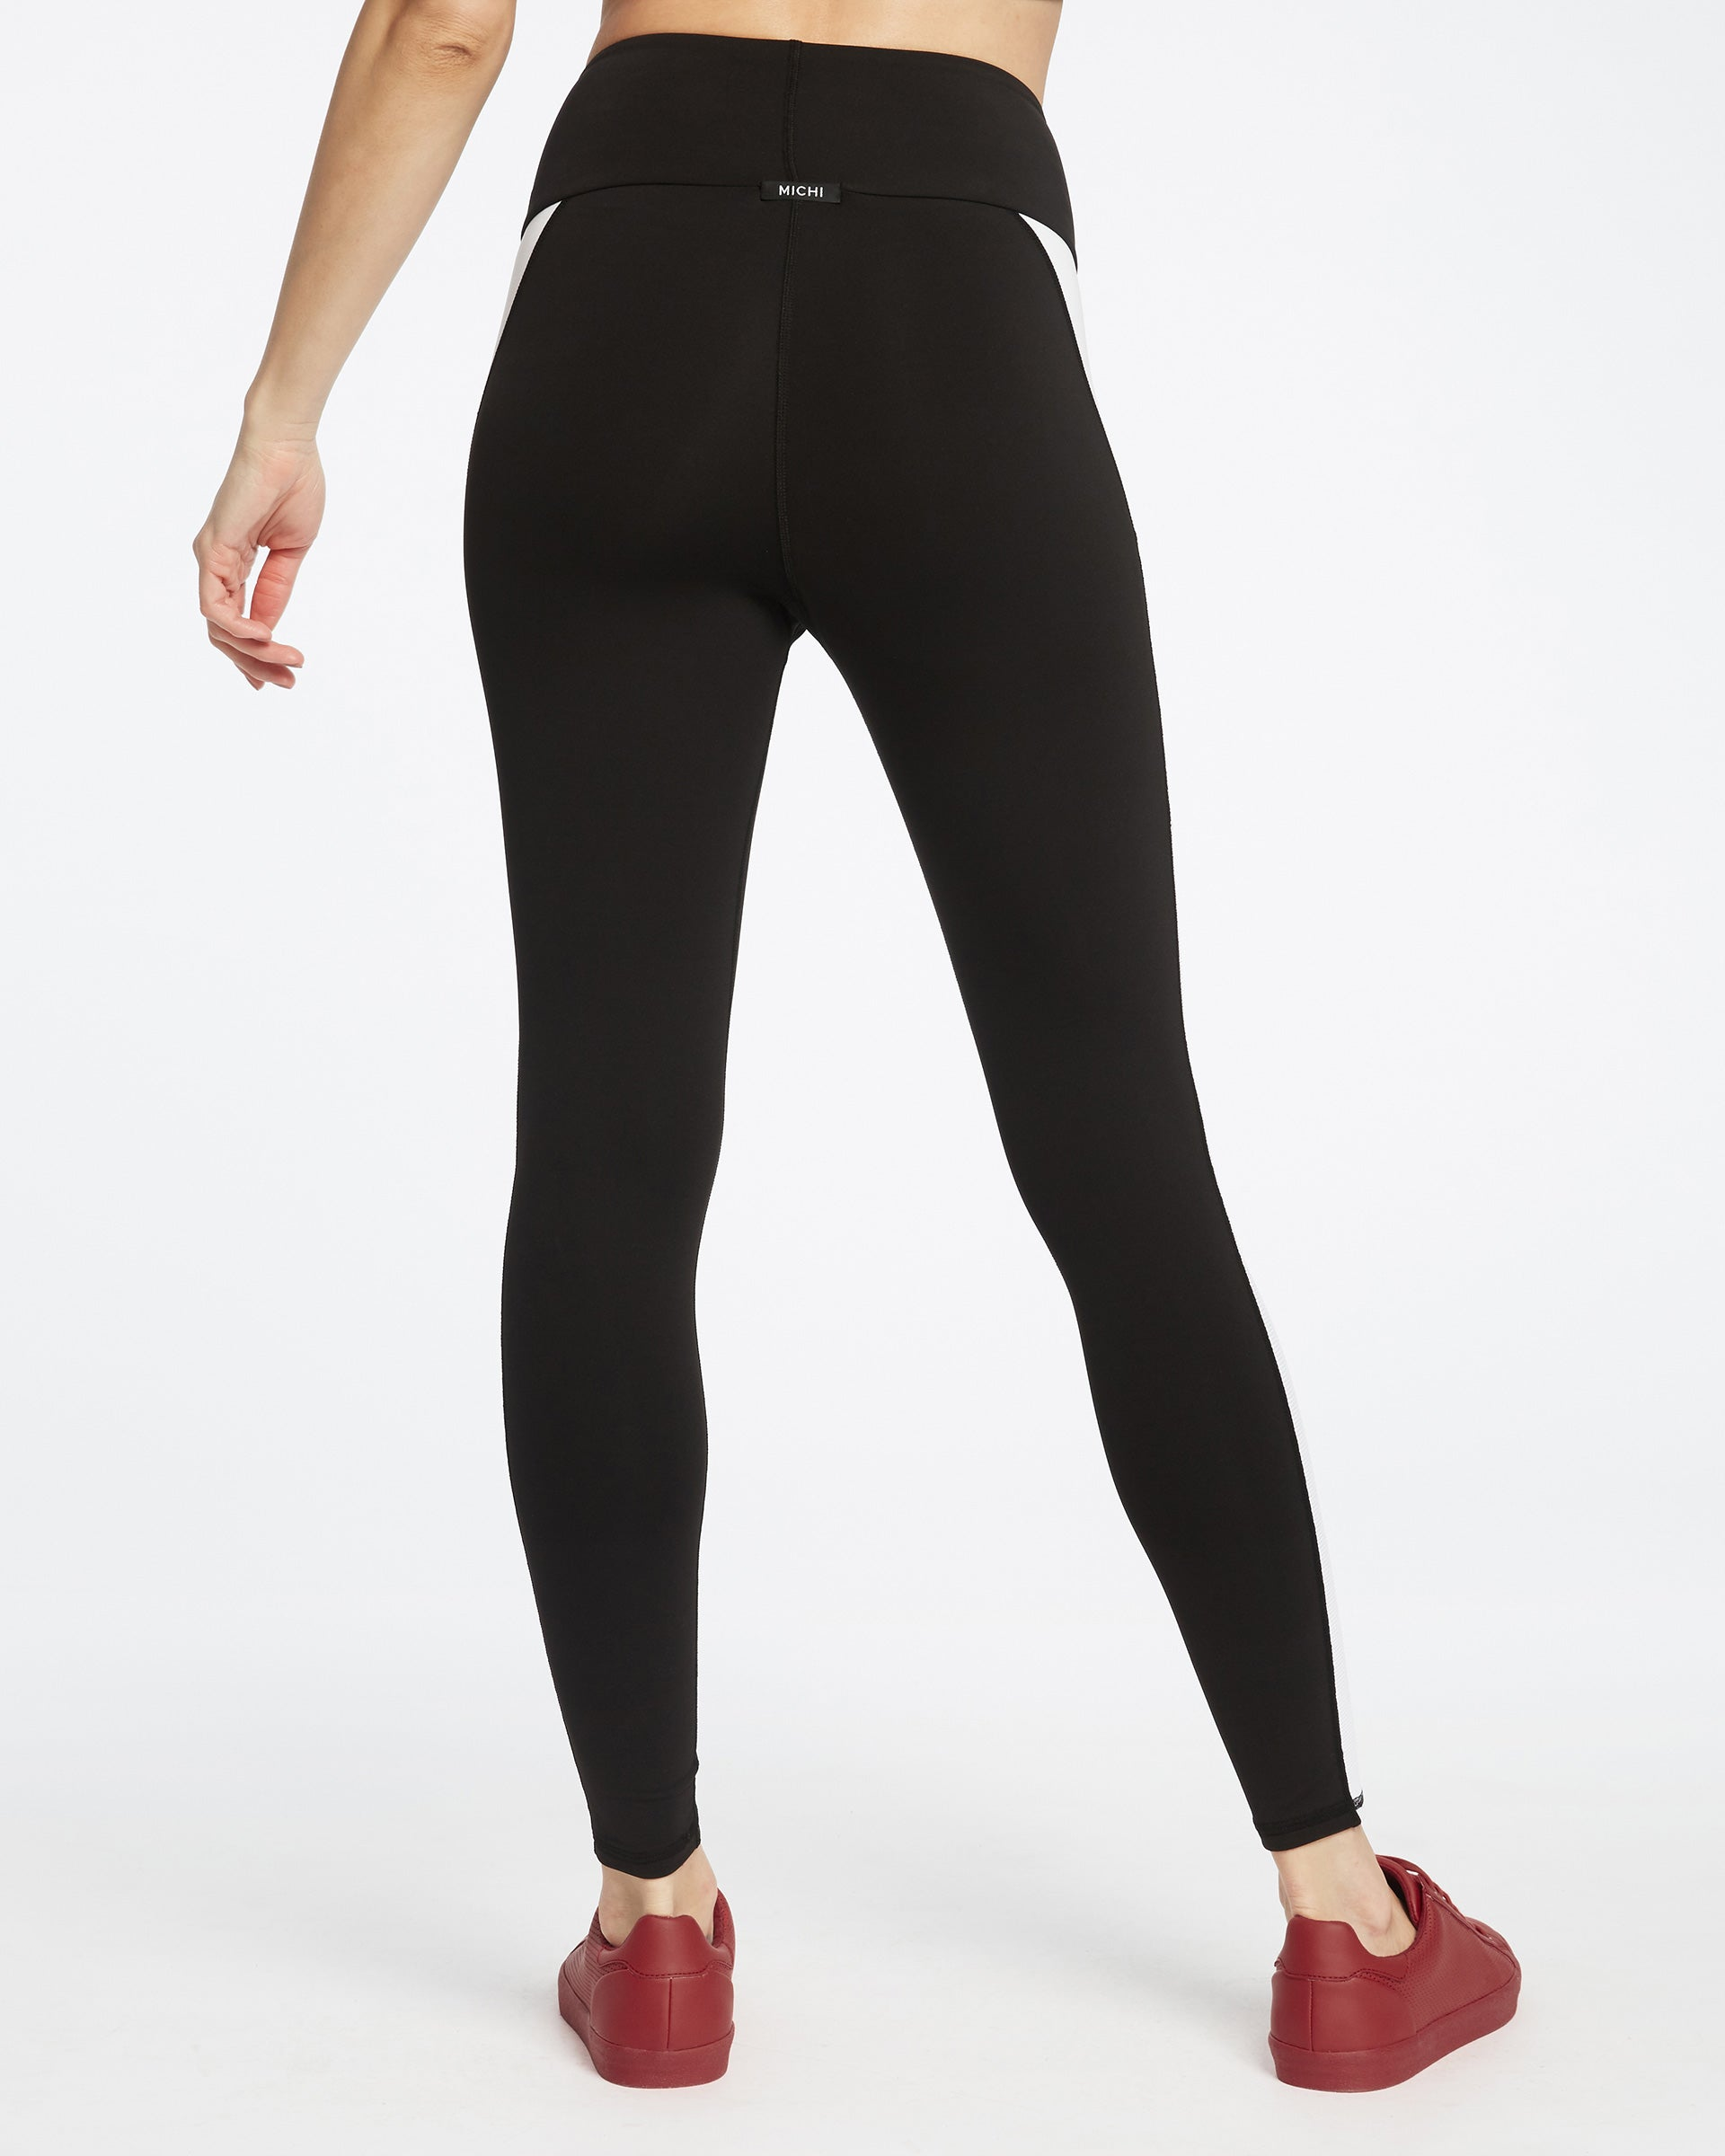 Gradient Pocket Legging - Black/White/Wine